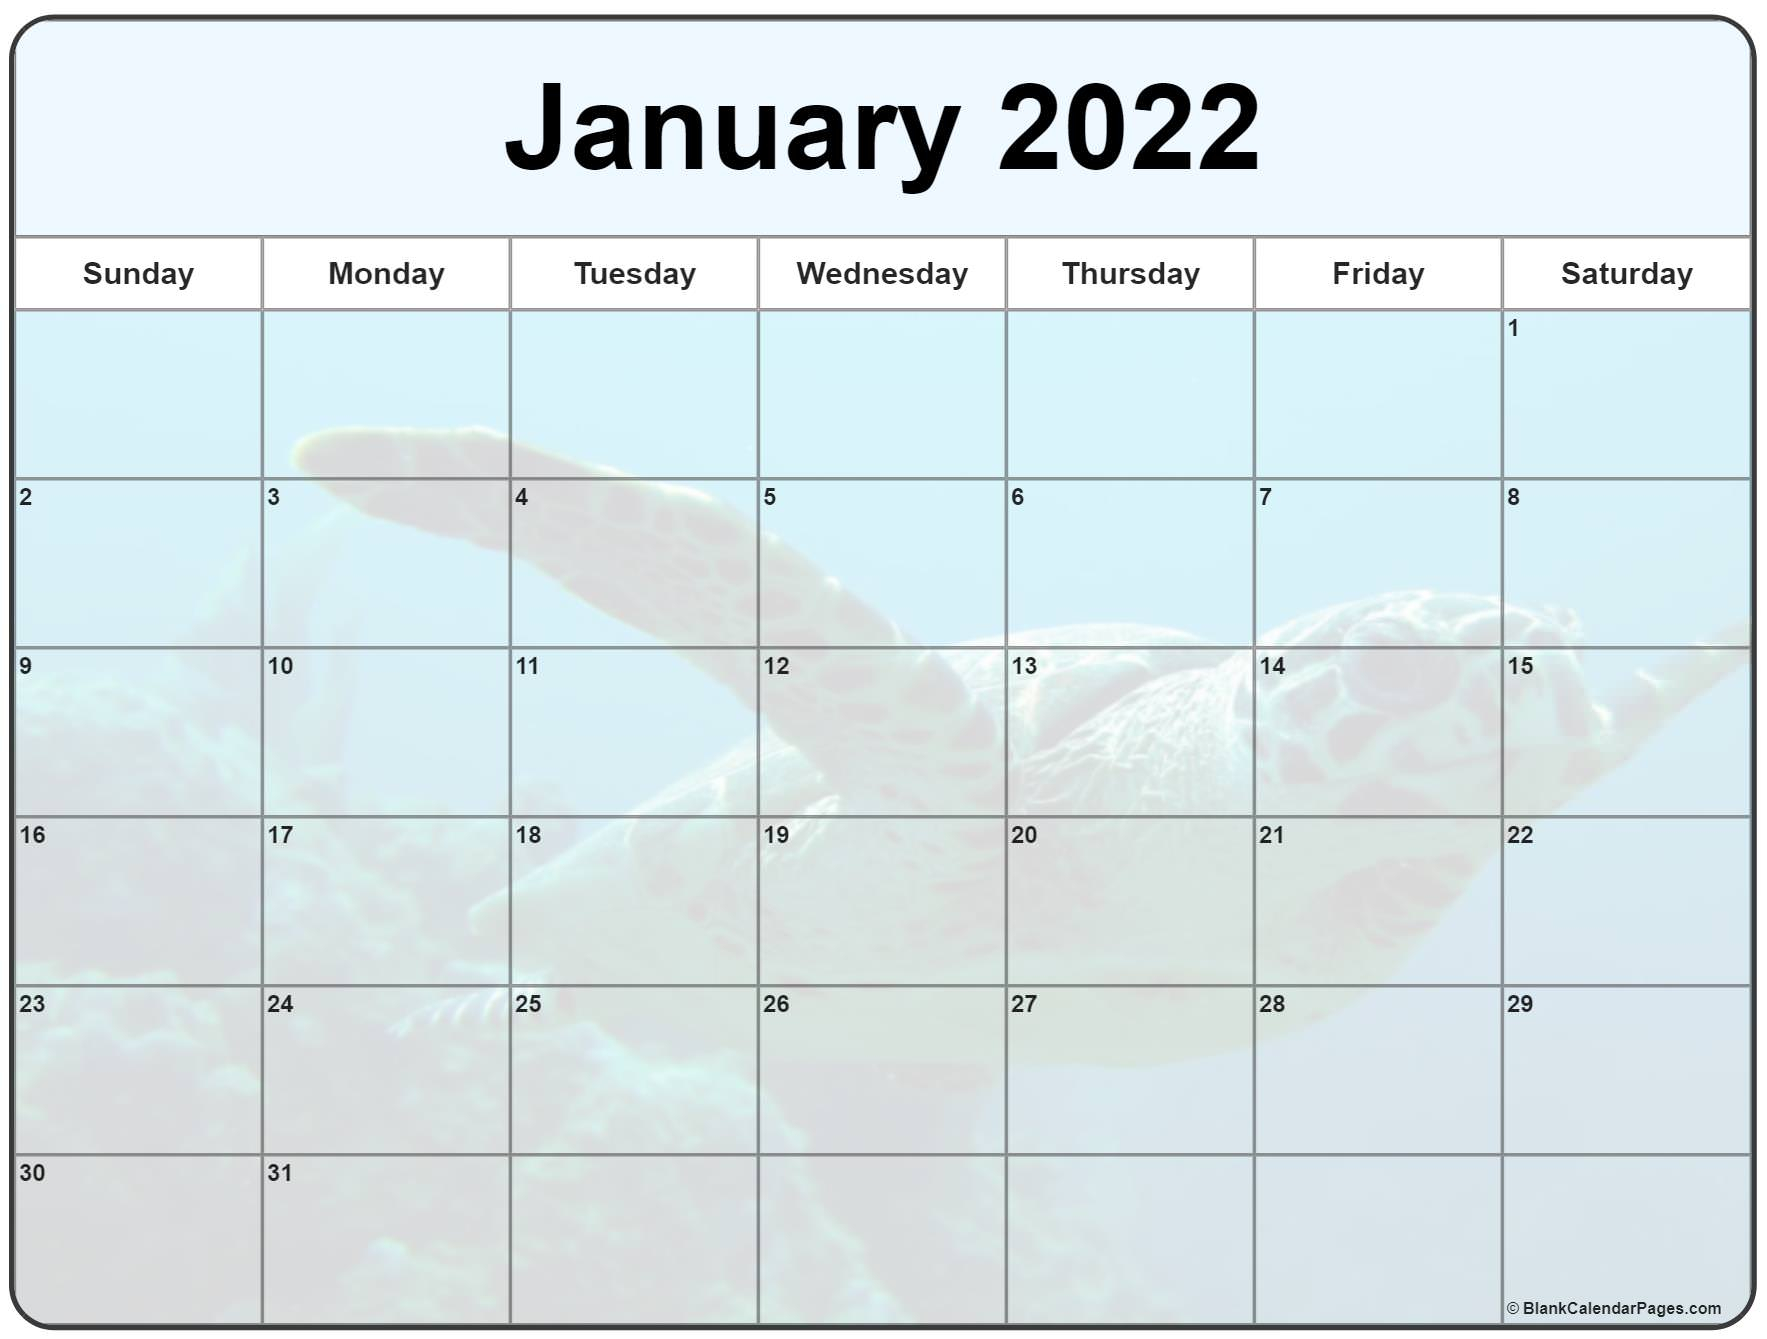 Collection Of January 2022 Photo Calendars With Image Filters. In January 2022 Free Printable Calendar